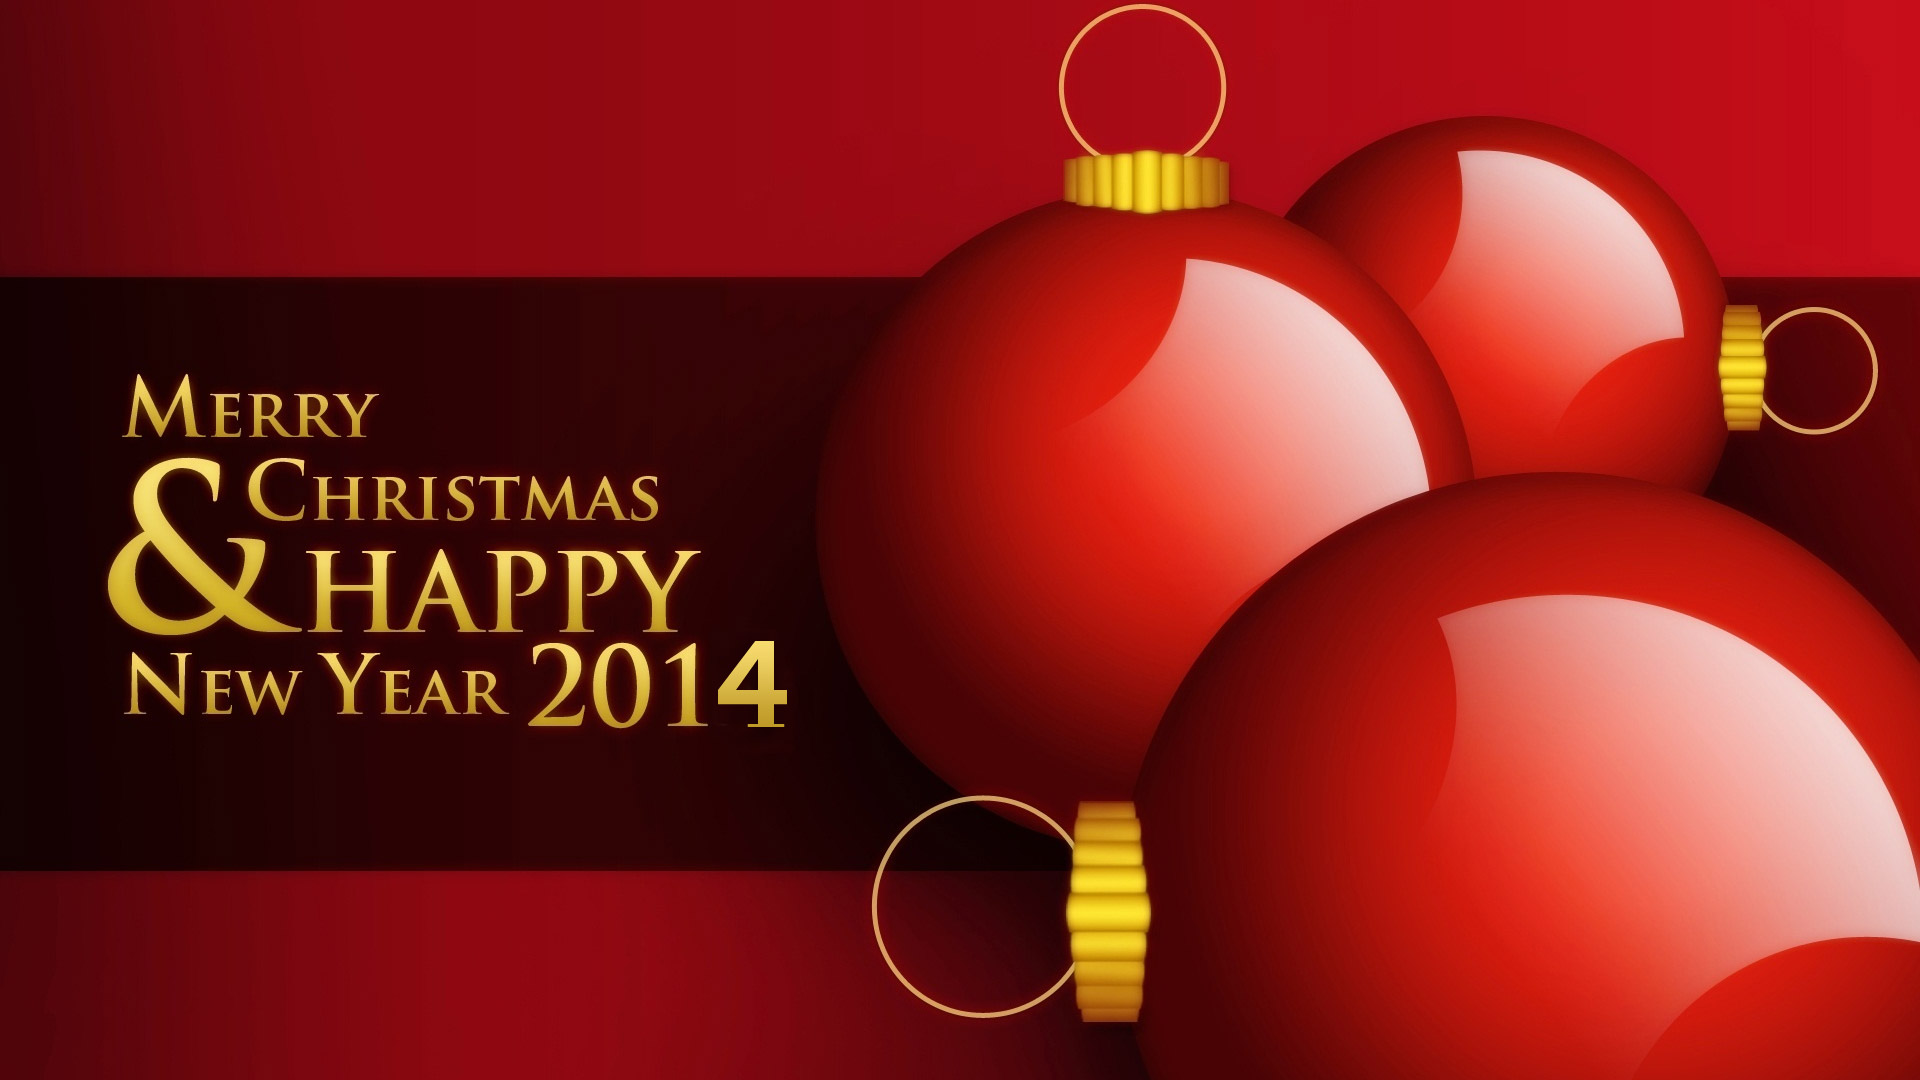 We would like to wish all our customers and Employees a Merry Christmas and a Happy New Year 2014